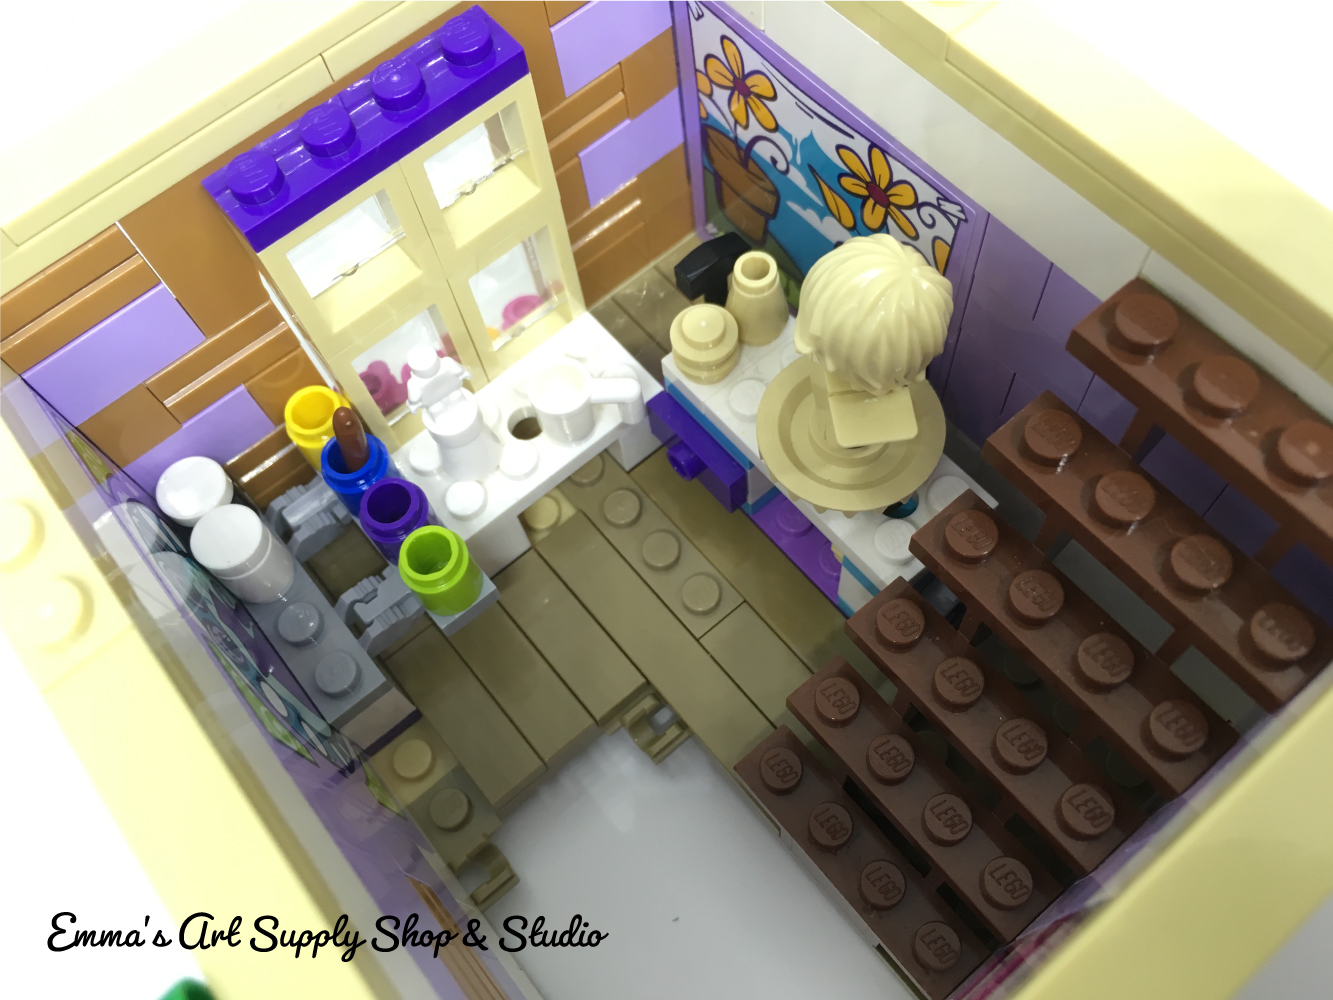 LEGO Friends Emmas Art Supply Shop and Studio